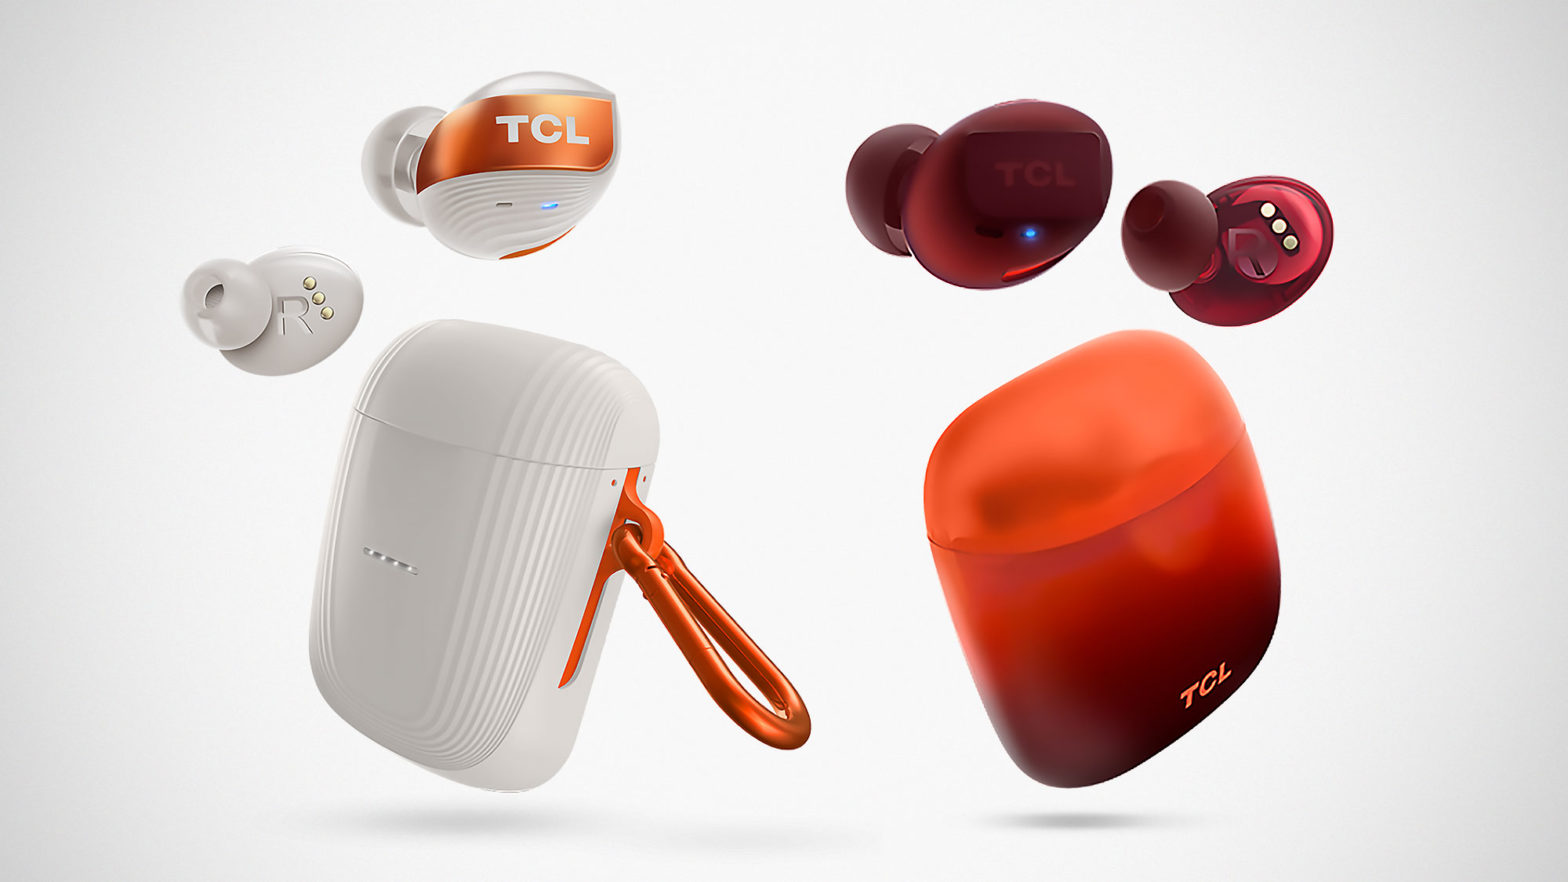 TCL SOCL and ACTV True Wireless Earbuds